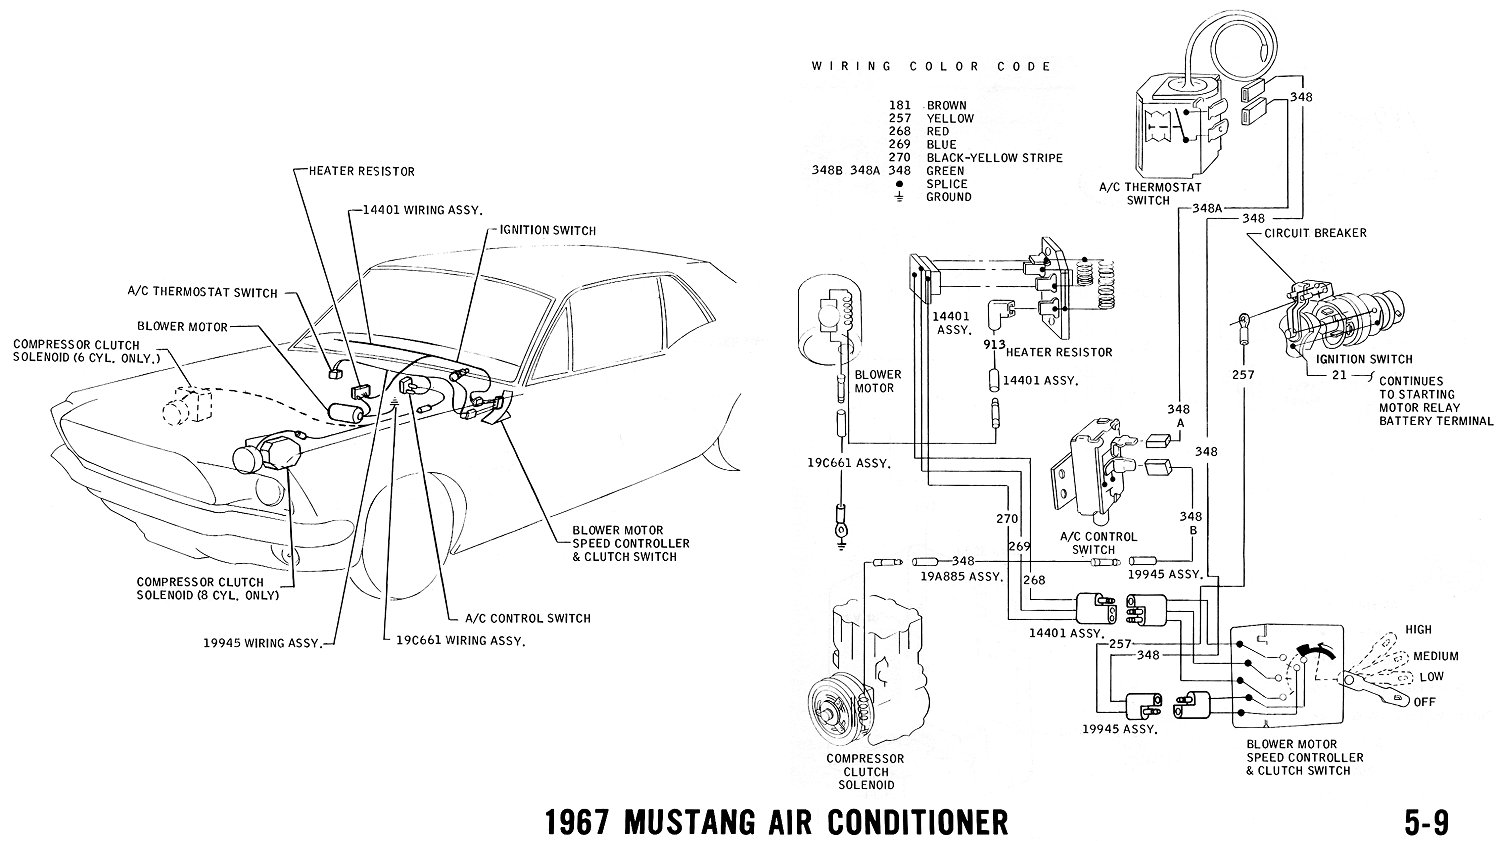 66 ford mustang wiring diagram with 1967 Mustang Wiring And Vacuum Diagrams on 70 Mustang Ignition Wiring Diagram in addition 1968 Mustang Wiring Diagram Vacuum Schematics besides 1964 Mustang Wiring Diagrams as well 60x09 Ford 250 1968 F250 Keeps Acting Battery Dead besides 1968 Mustang Wiring Diagram Vacuum Schematics.